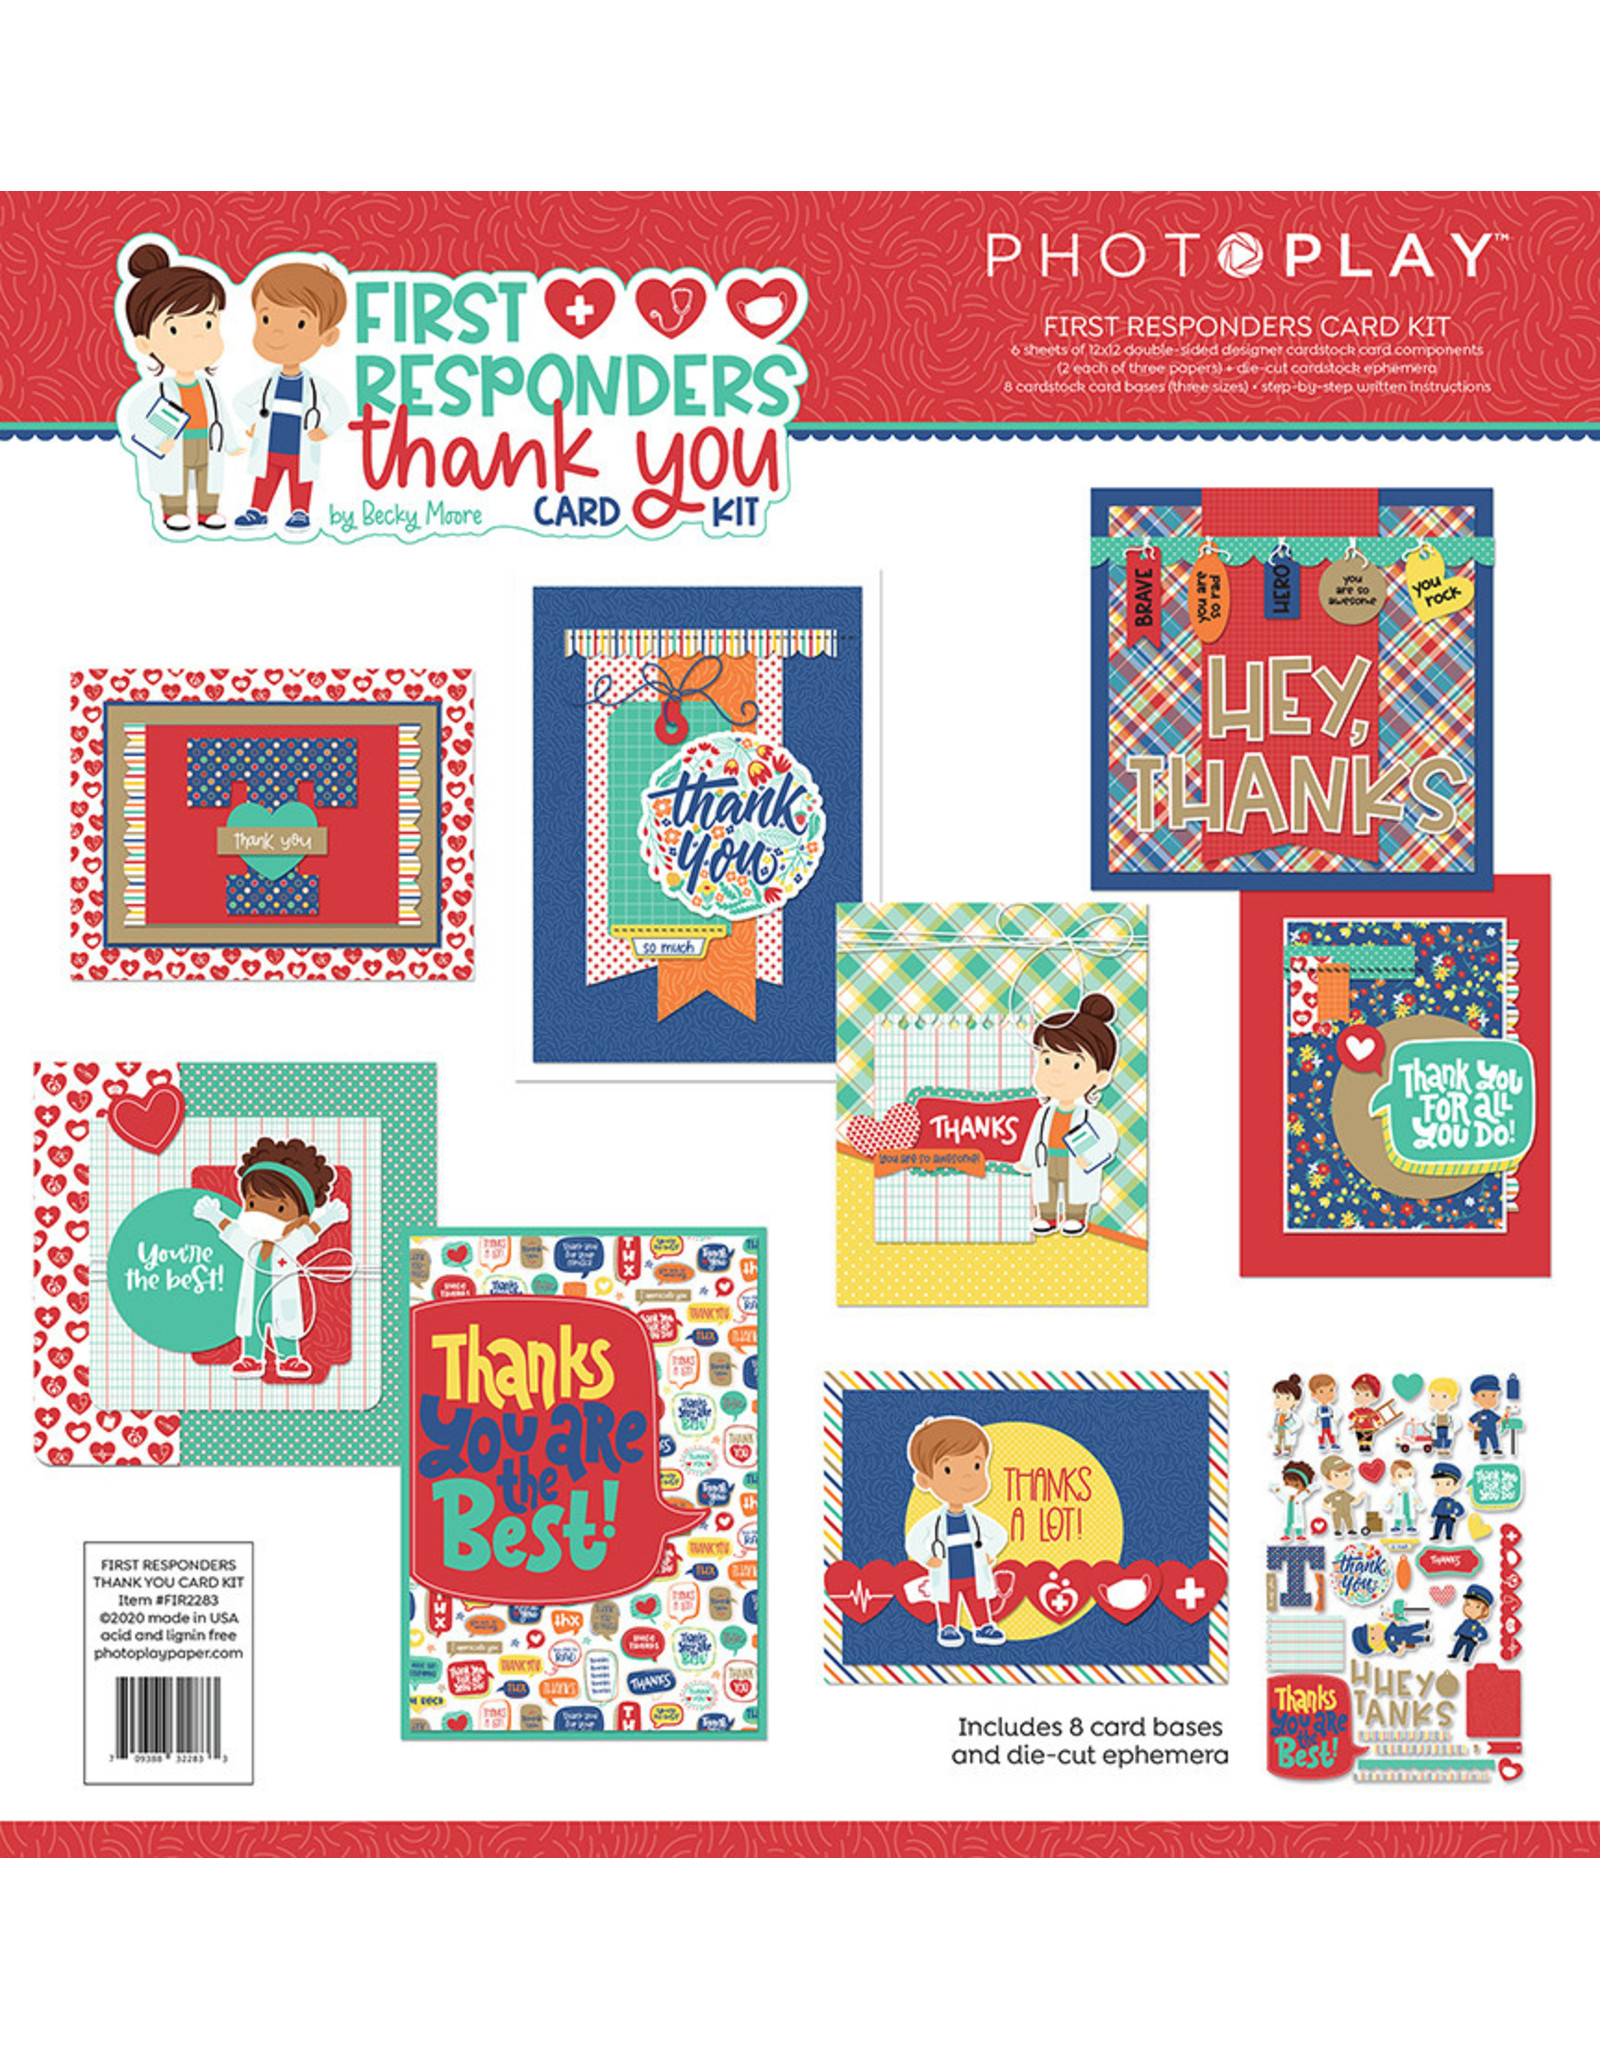 Photo Play First Responders Card Kit